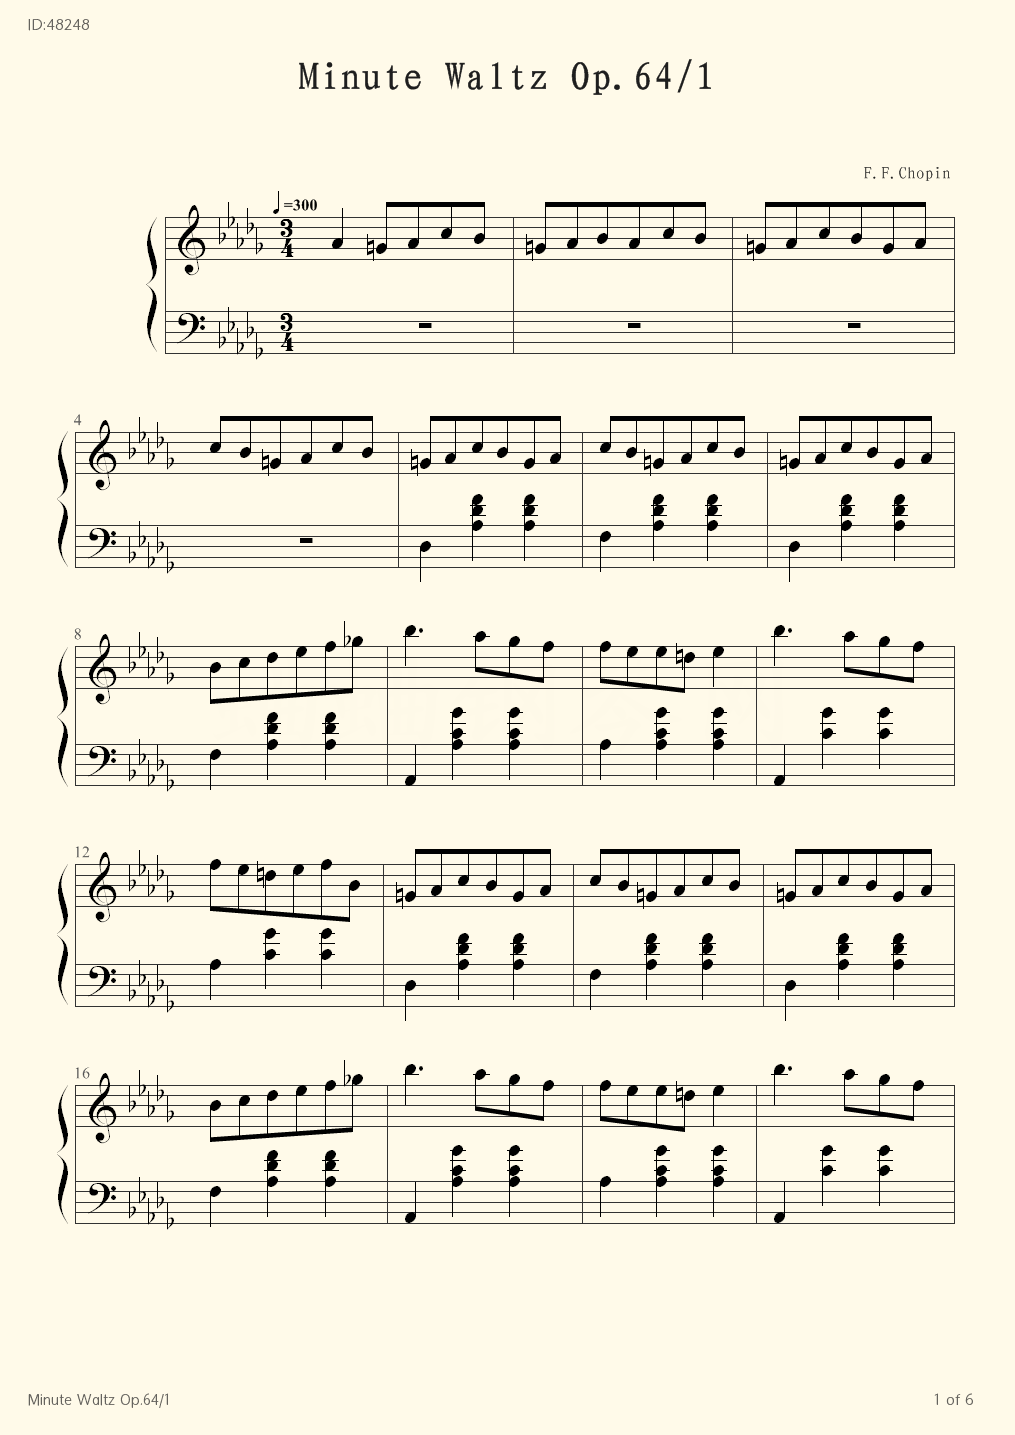 Minute Waltz Op.64/1 - F.F.Chopin - first page